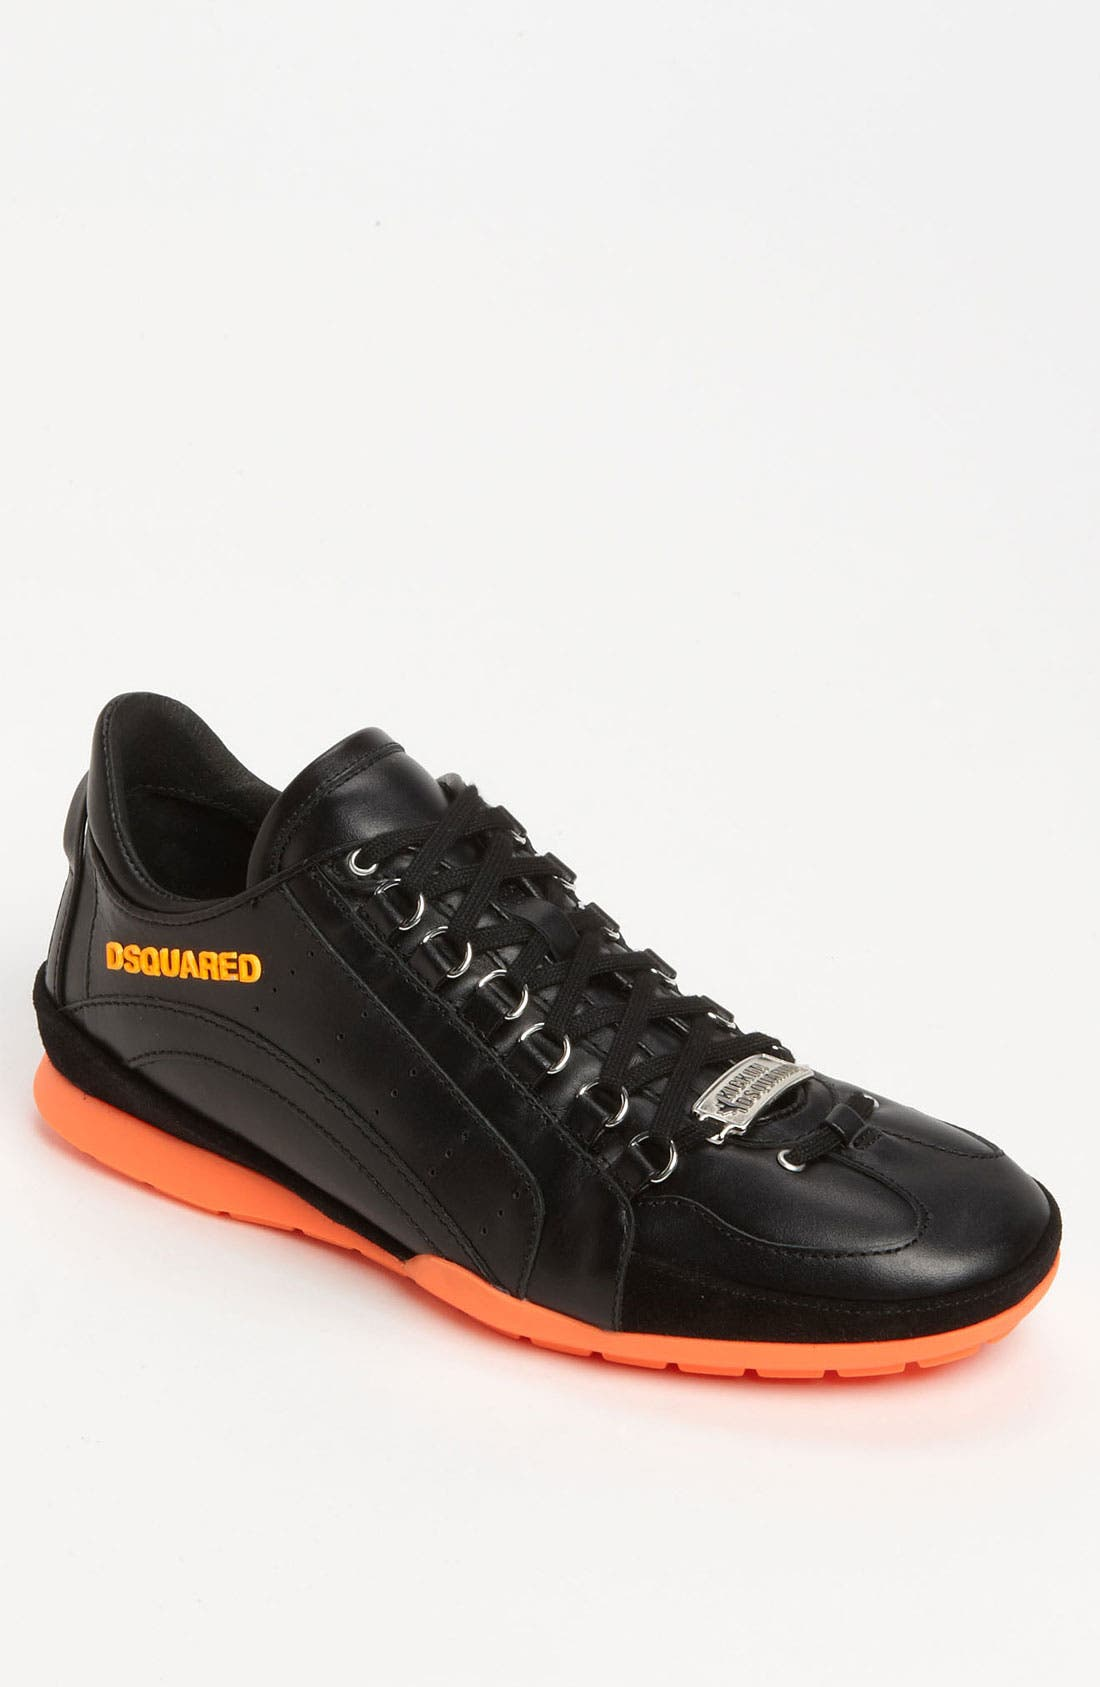 Alternate Image 1 Selected - Dsquared2 '553' Sneaker